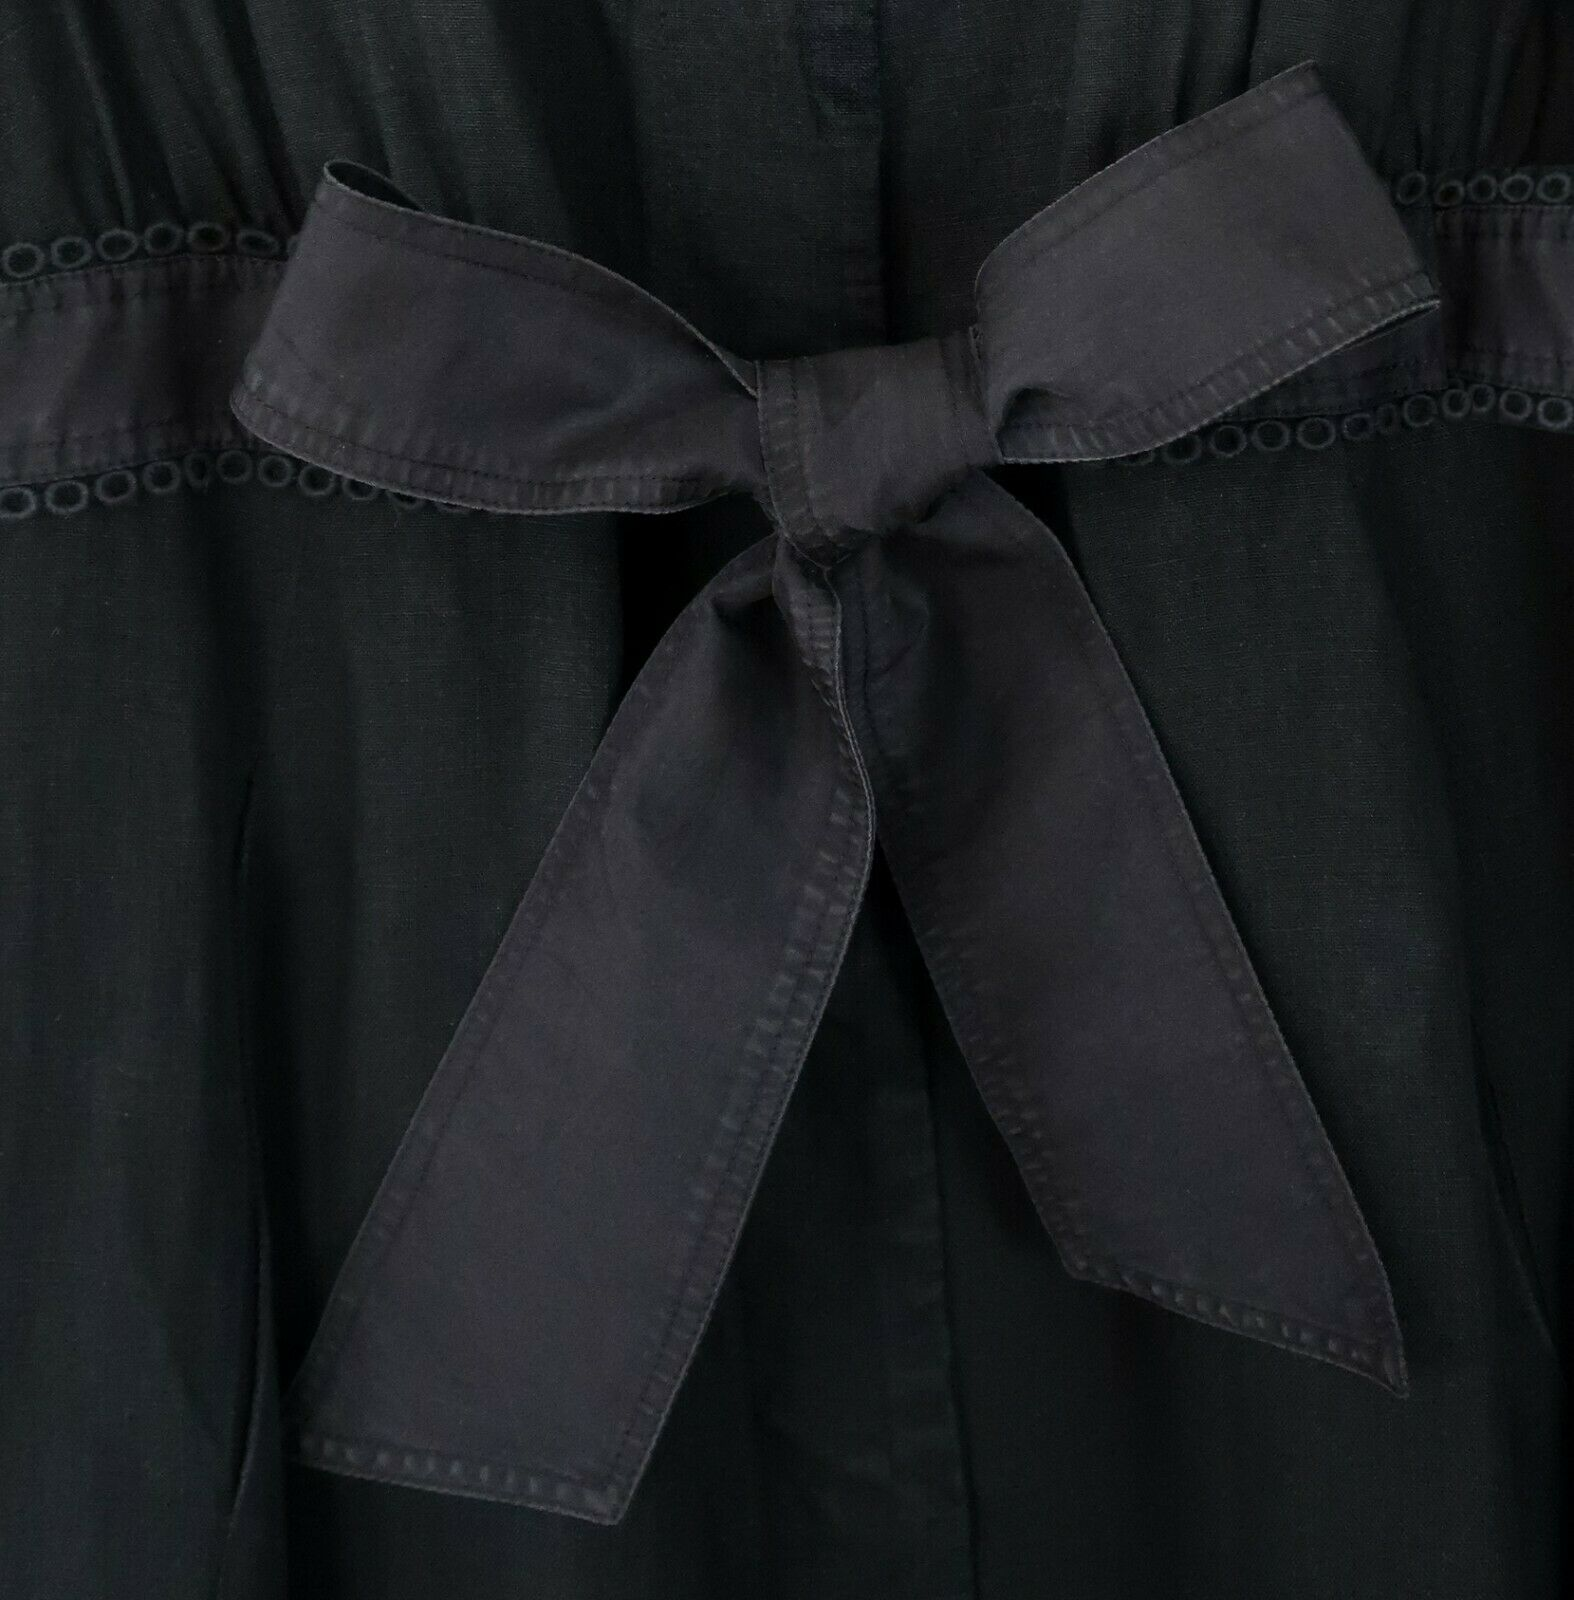 Manteau lin doublÉ by tara jarmon *noir *ruban satin À nouer *new offer 44 €